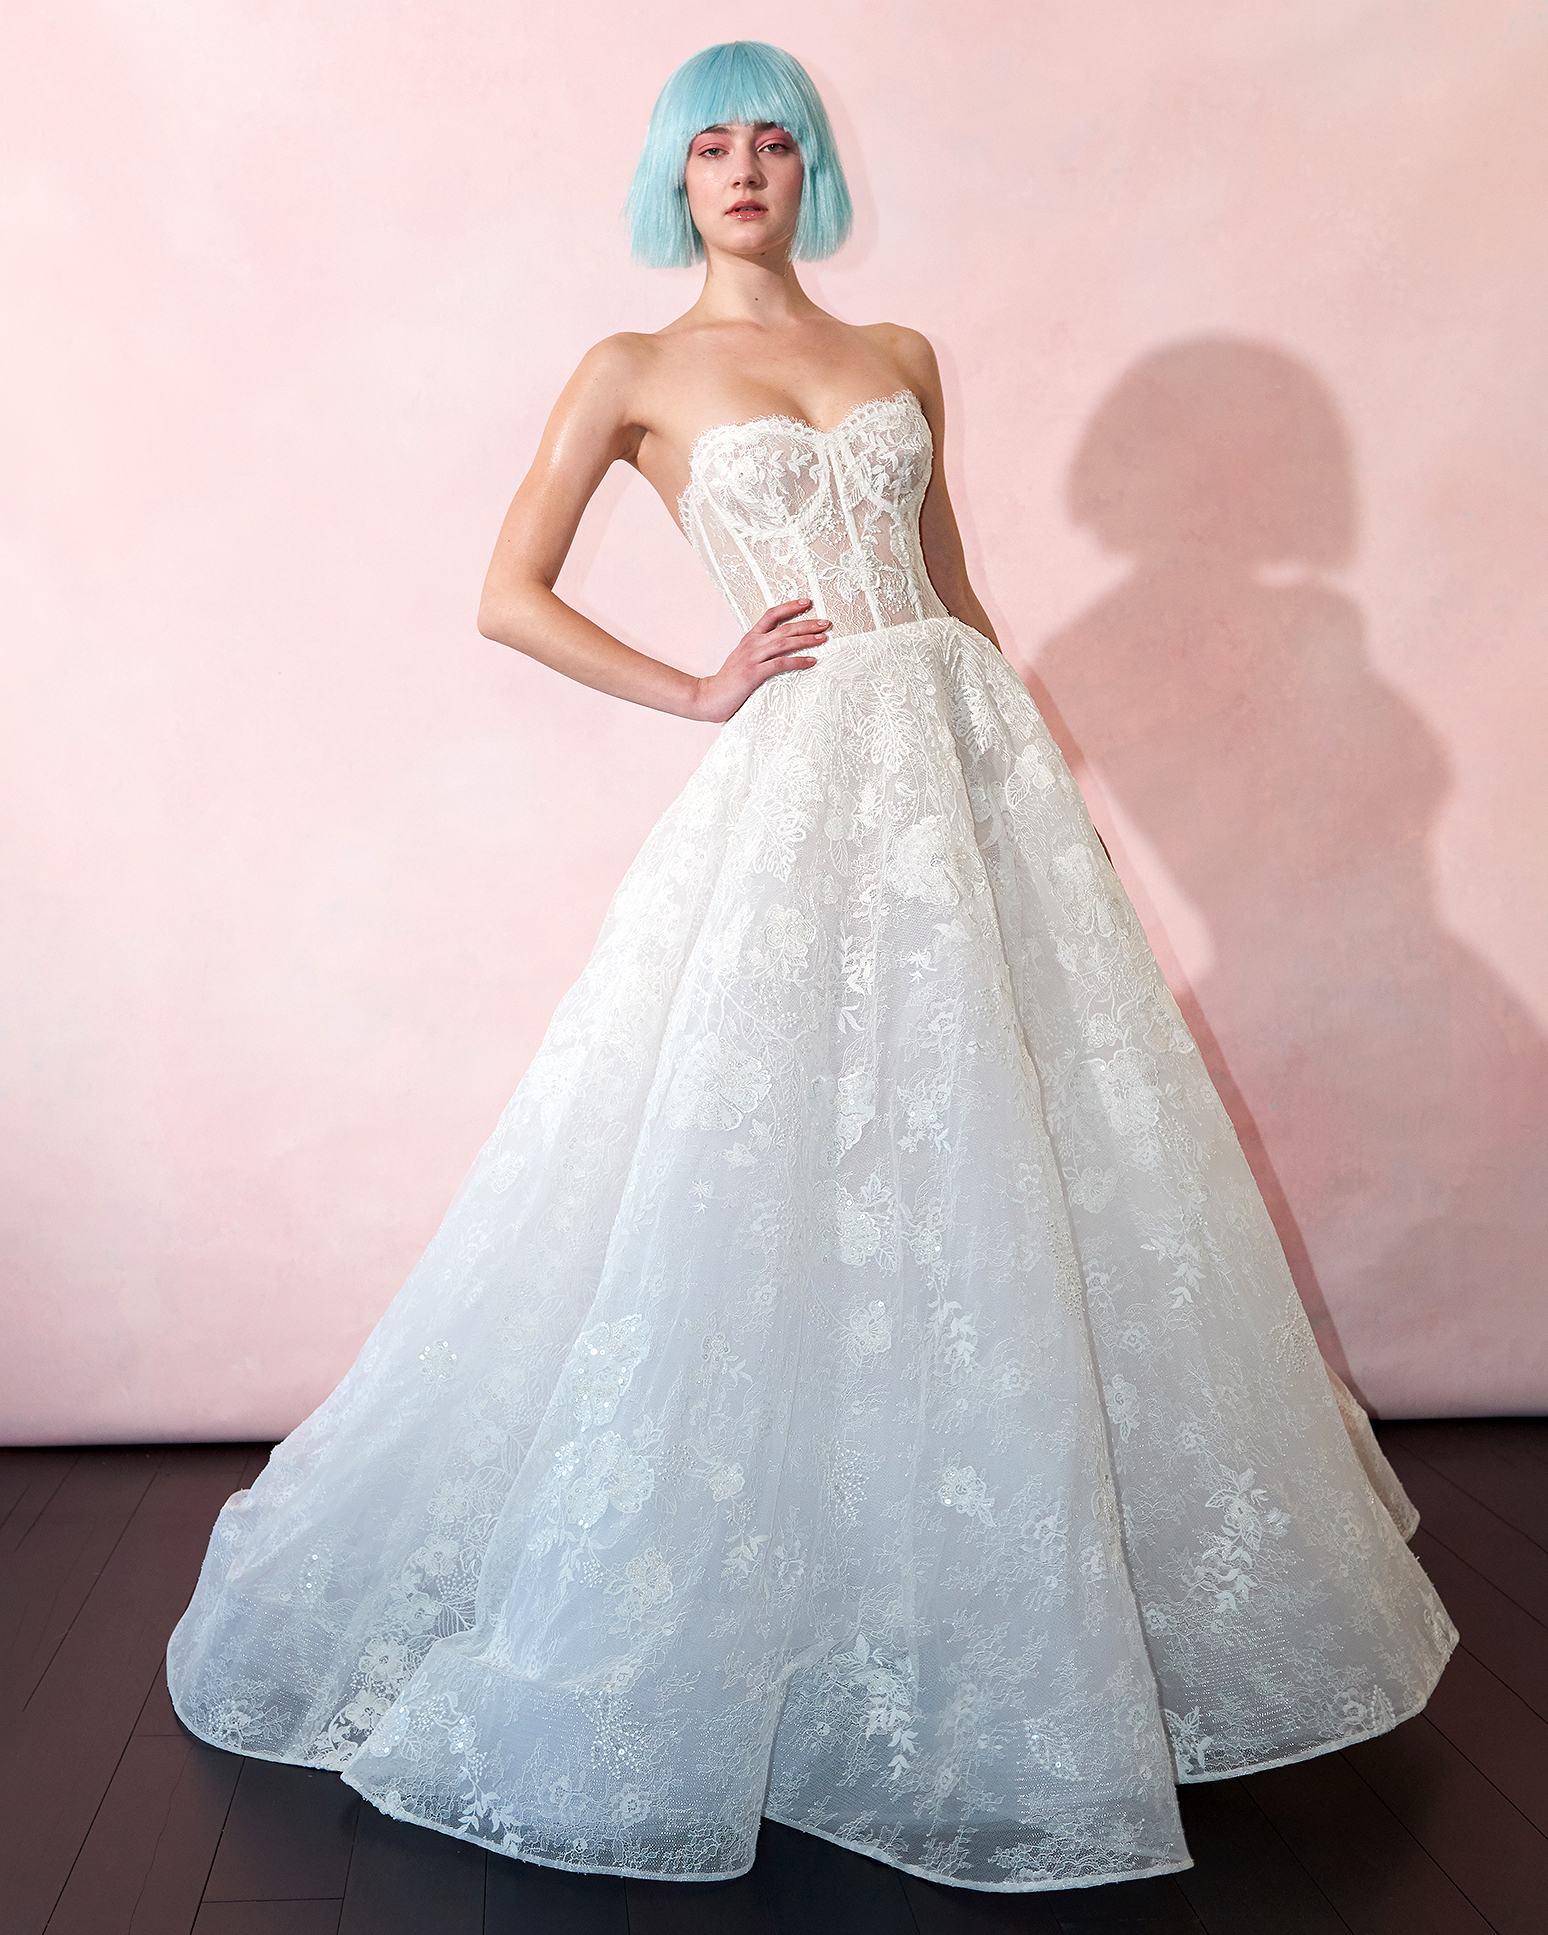 isabelle armstrong wedding dress spring 2019 corseted bodice lace detail